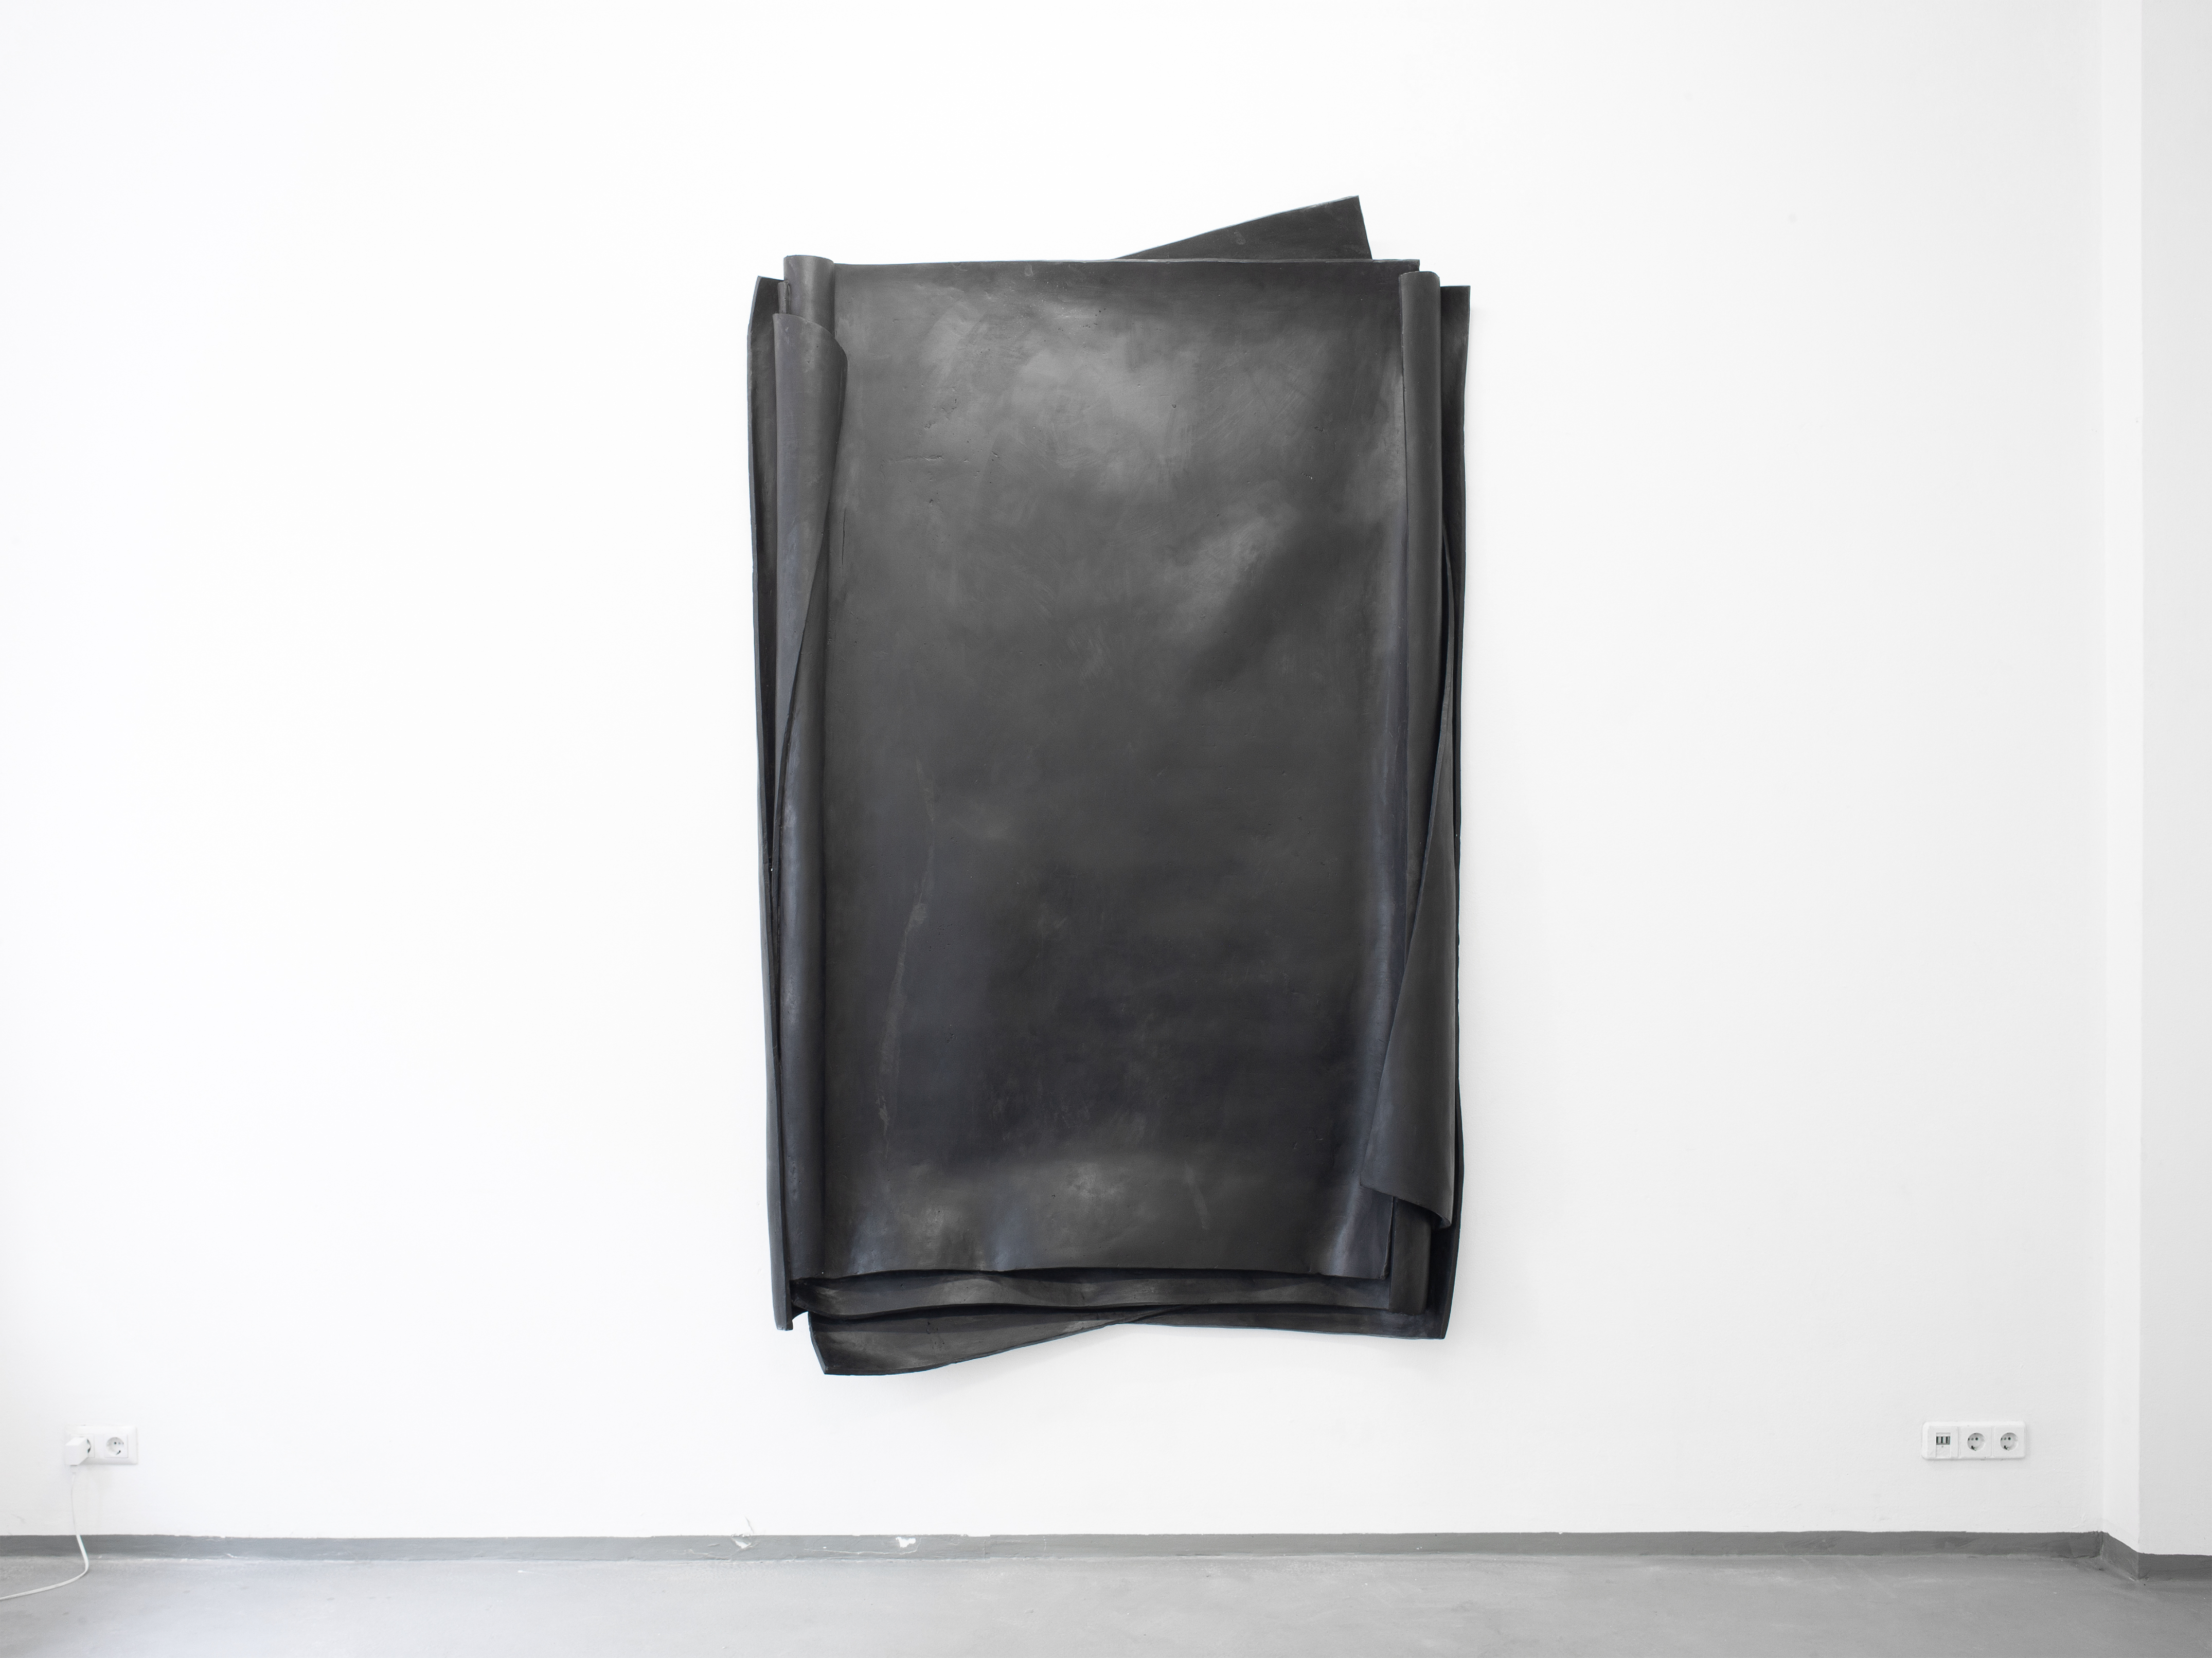 Besser Vertikal 02 is a sculpture made out of black Epoxy Resin. The artwork by Erik Andersen is presented hanging on the white wall of the gallery.